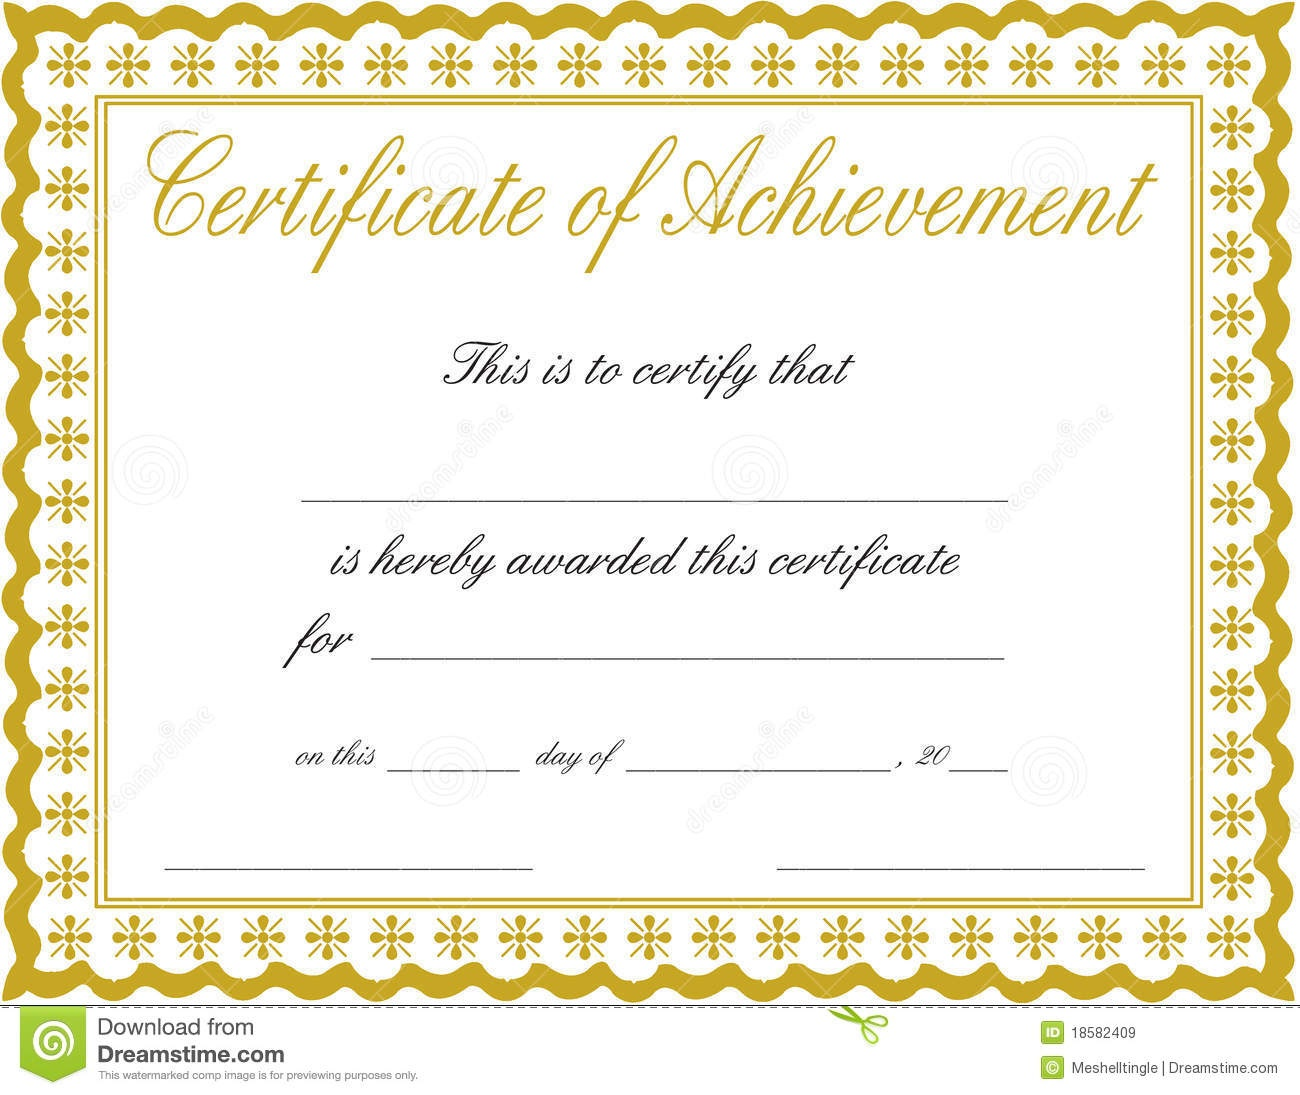 Free Printable Certificate Of Achievement - Design Templates - Free Customizable Printable Certificates Of Achievement